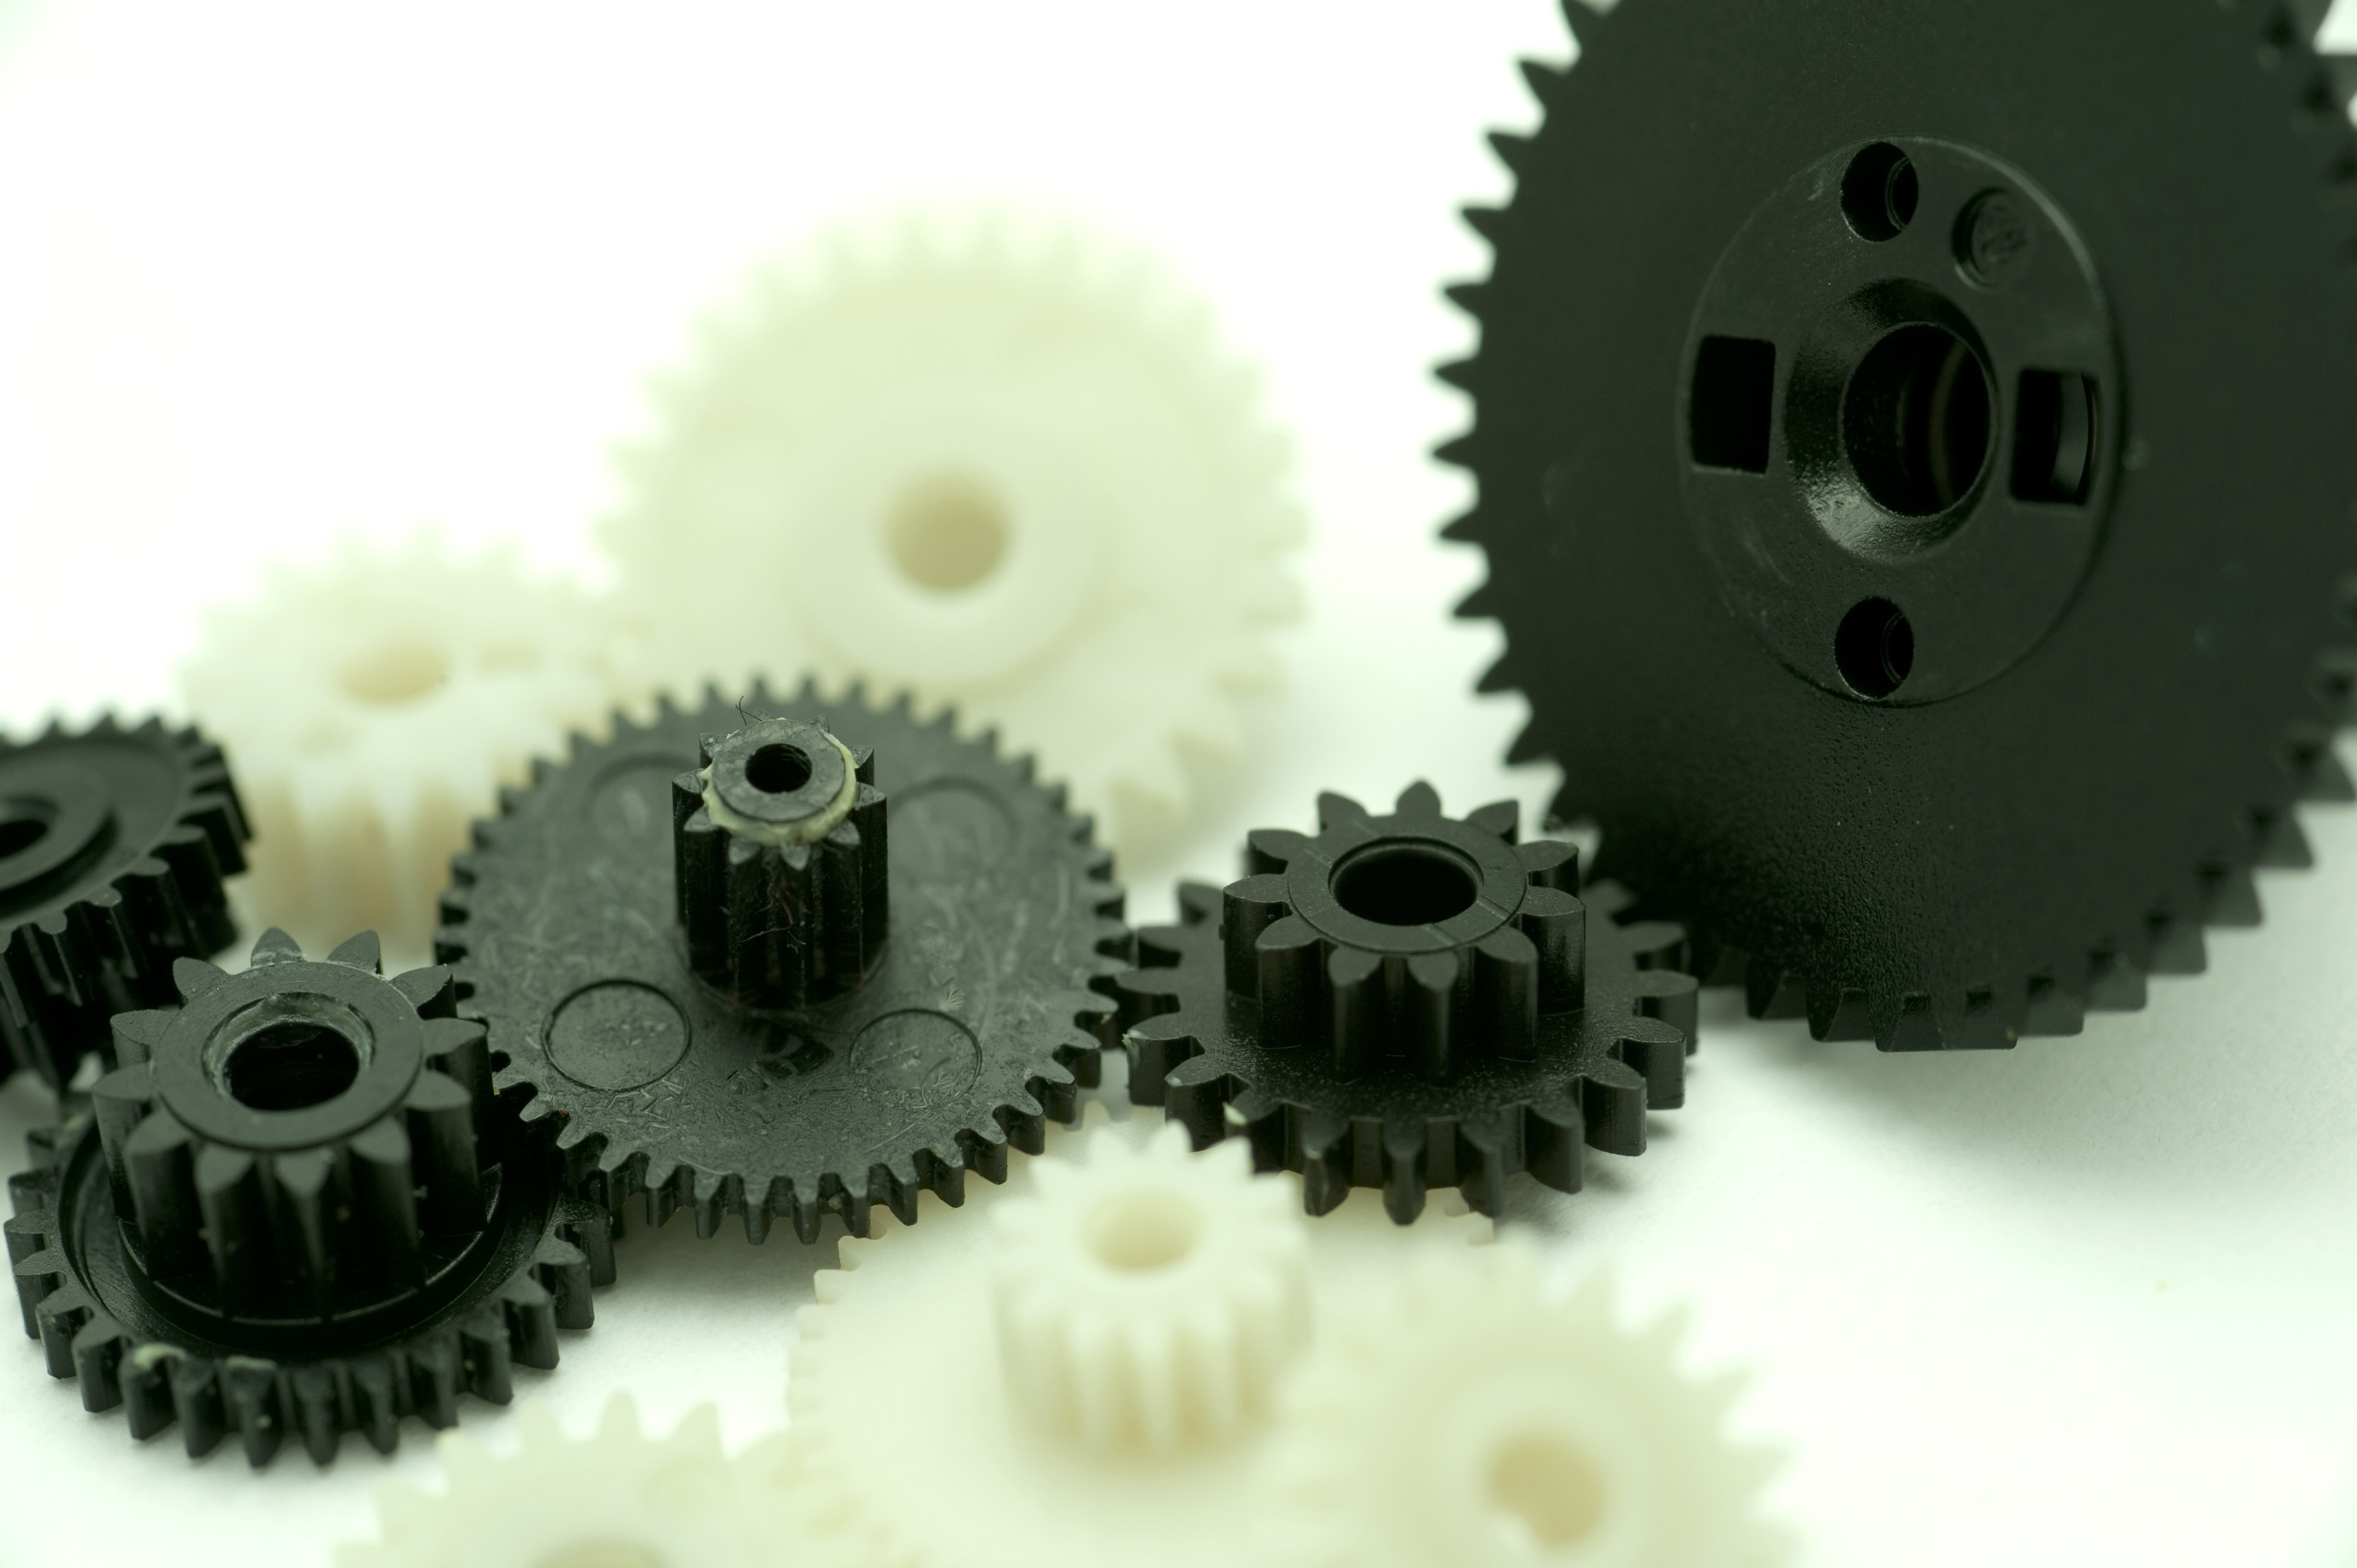 Close up Assorted Sizes of Plastic Black and White Gear Wheels on White Background, Emphasizing Teamwork Concept